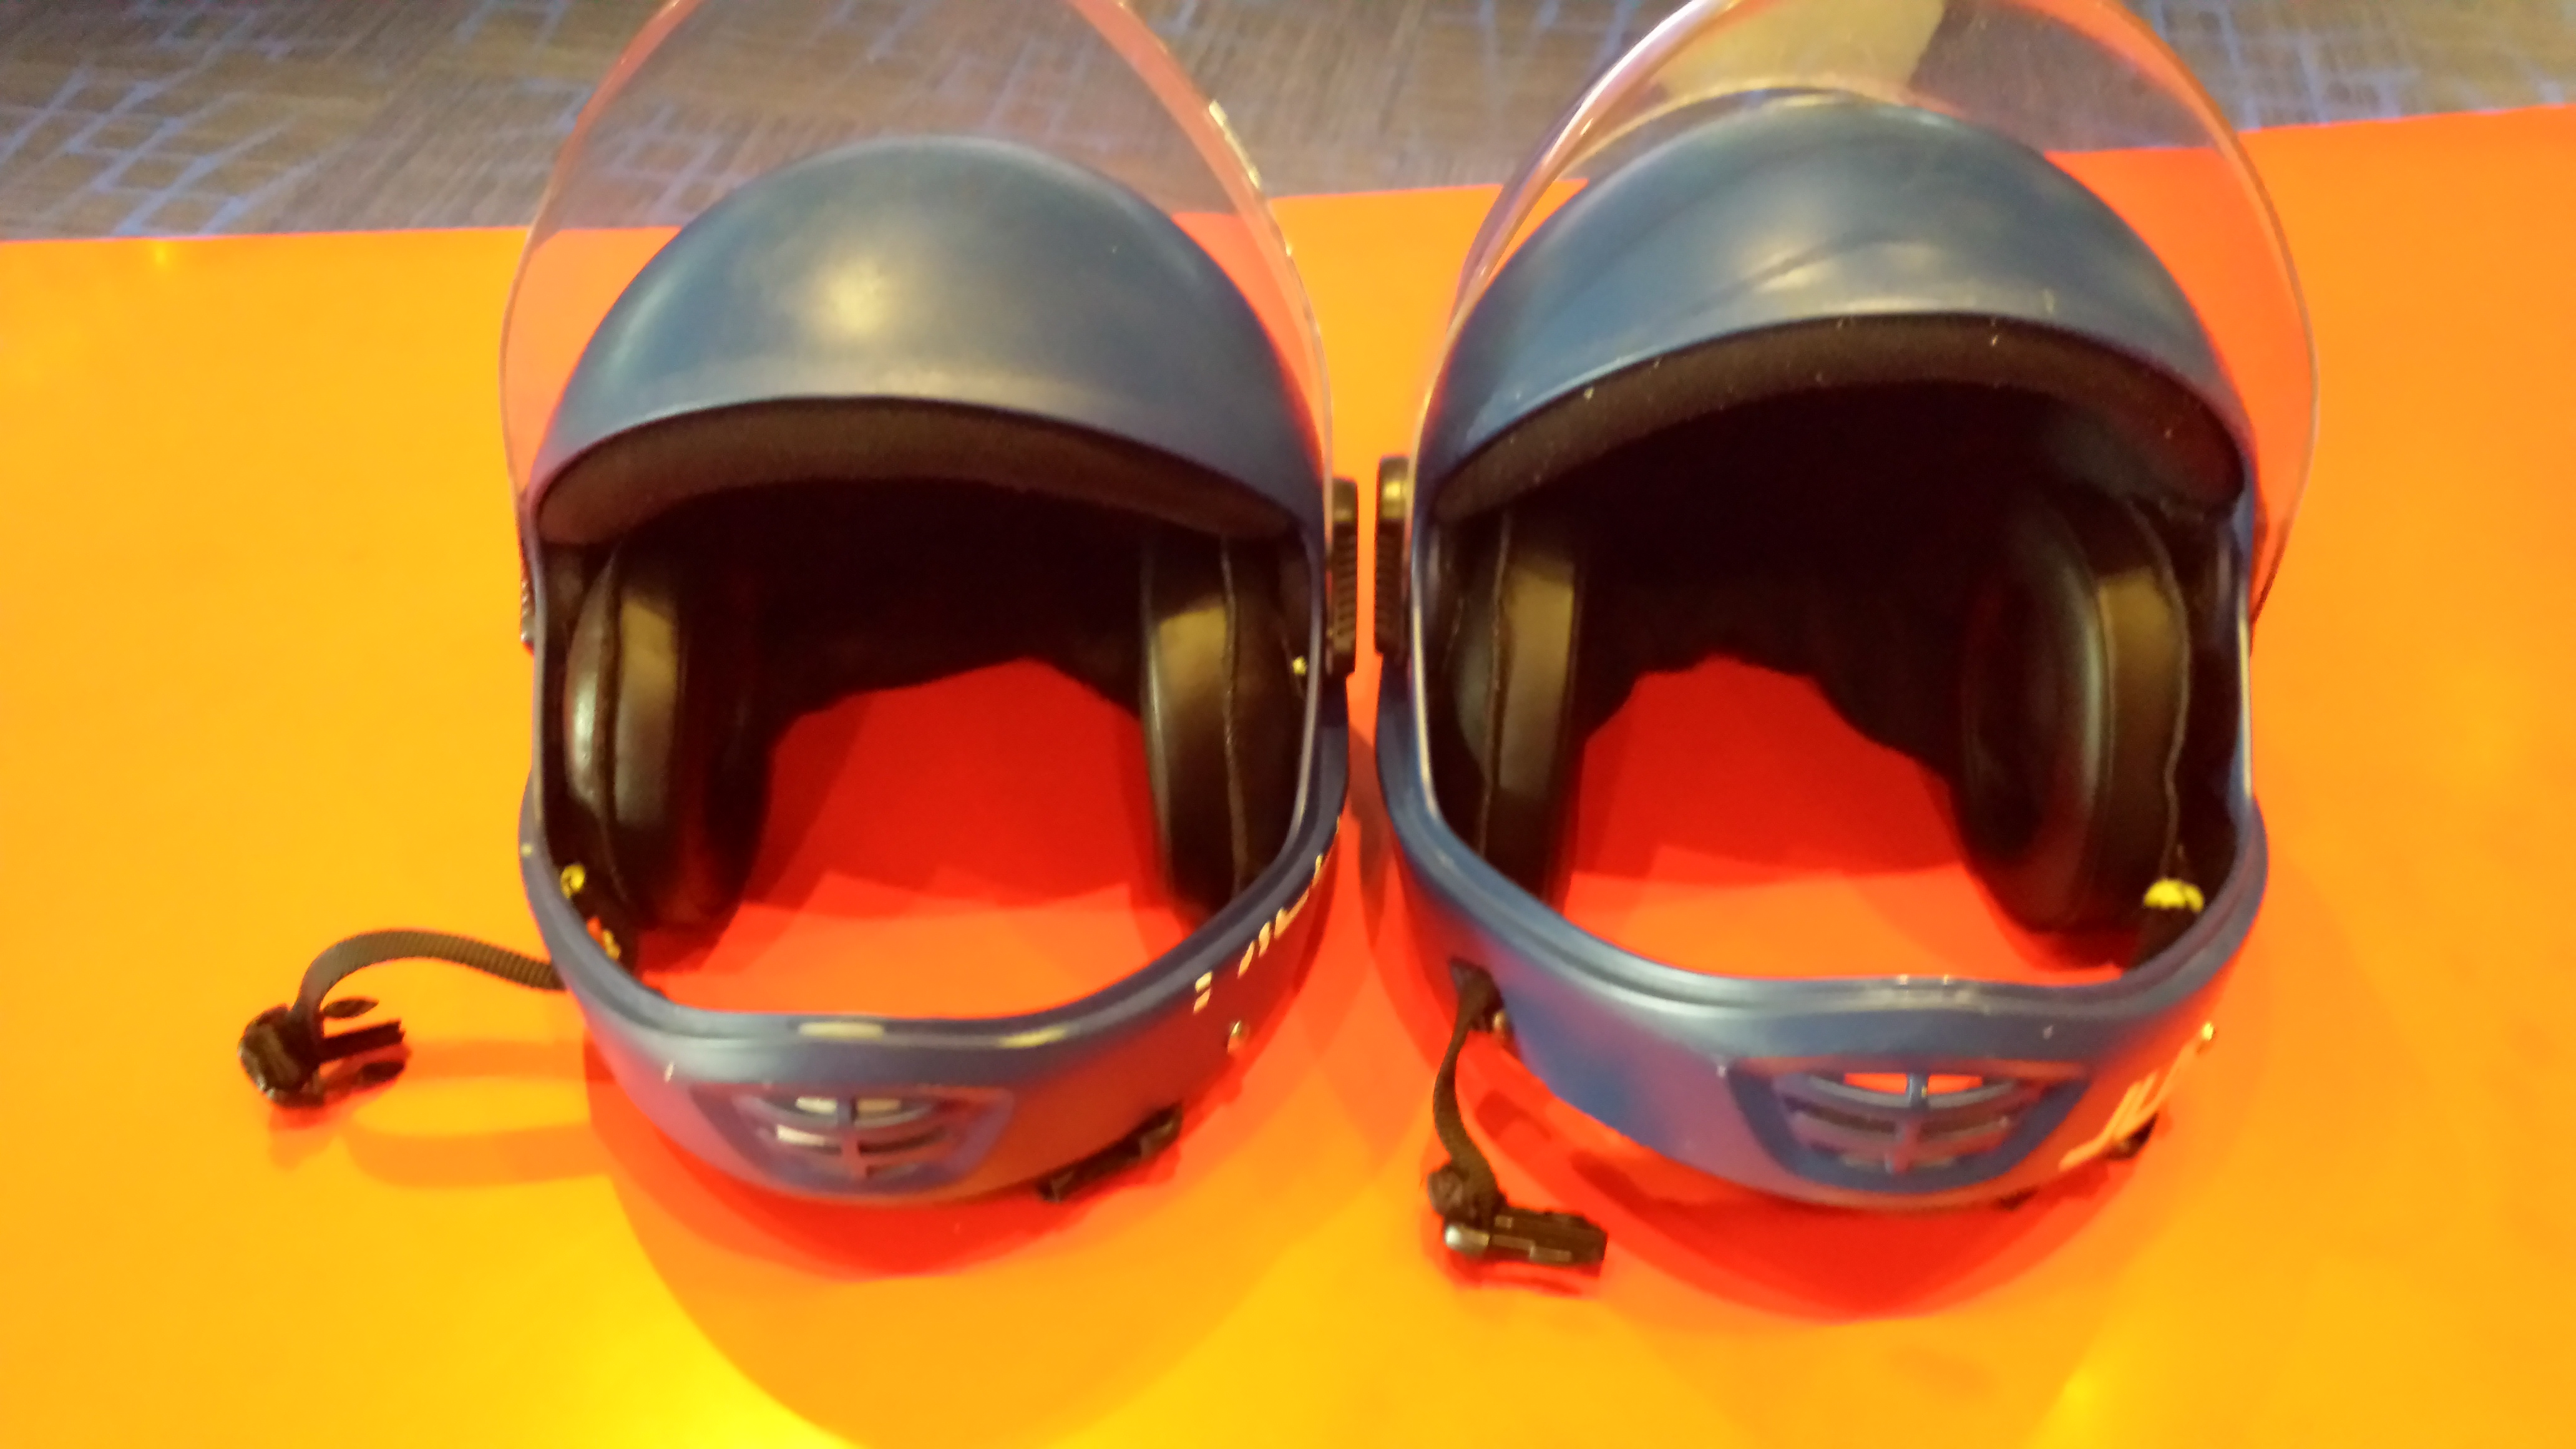 Picture of G3 Helmet Earmuffs